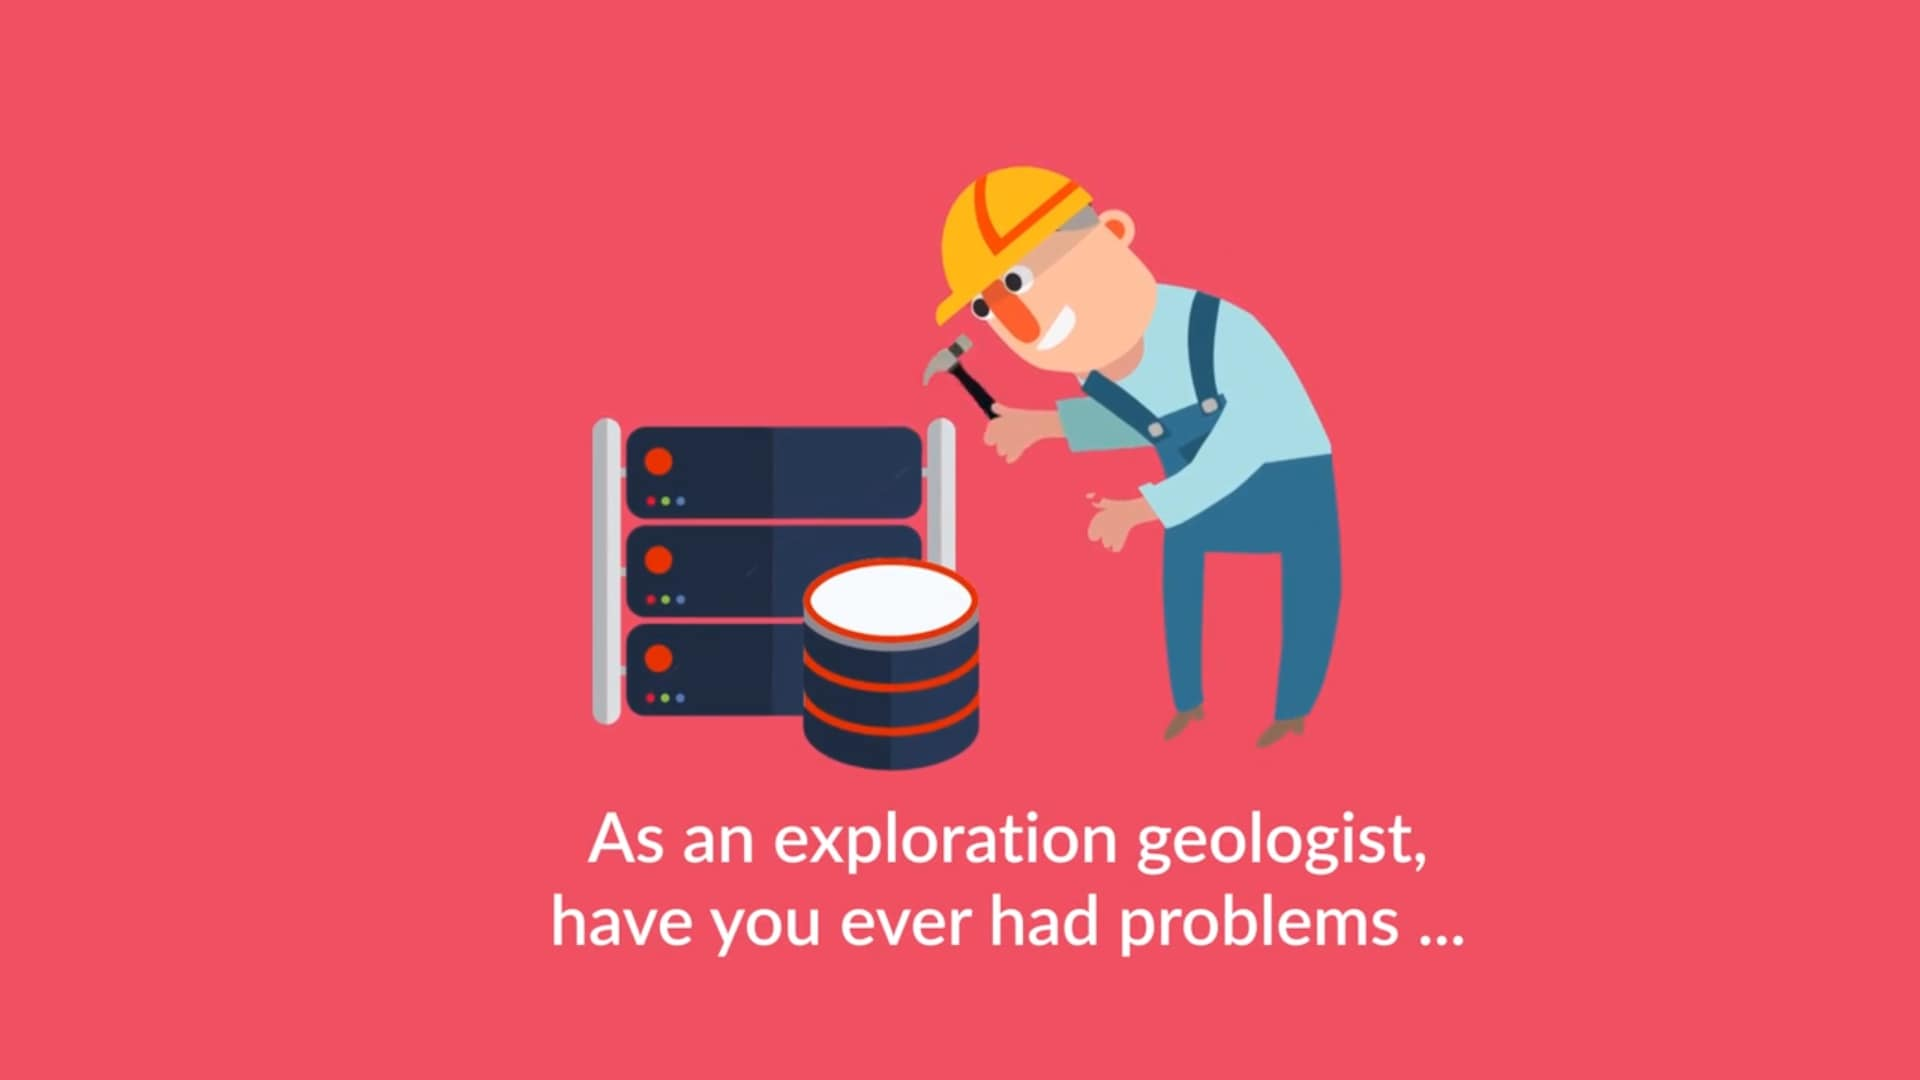 Fusion overview video screenshot showing a geologist holding a pick staring at a geological database with the words 'as an exploration geologist, have you ever had problems...' underneath.